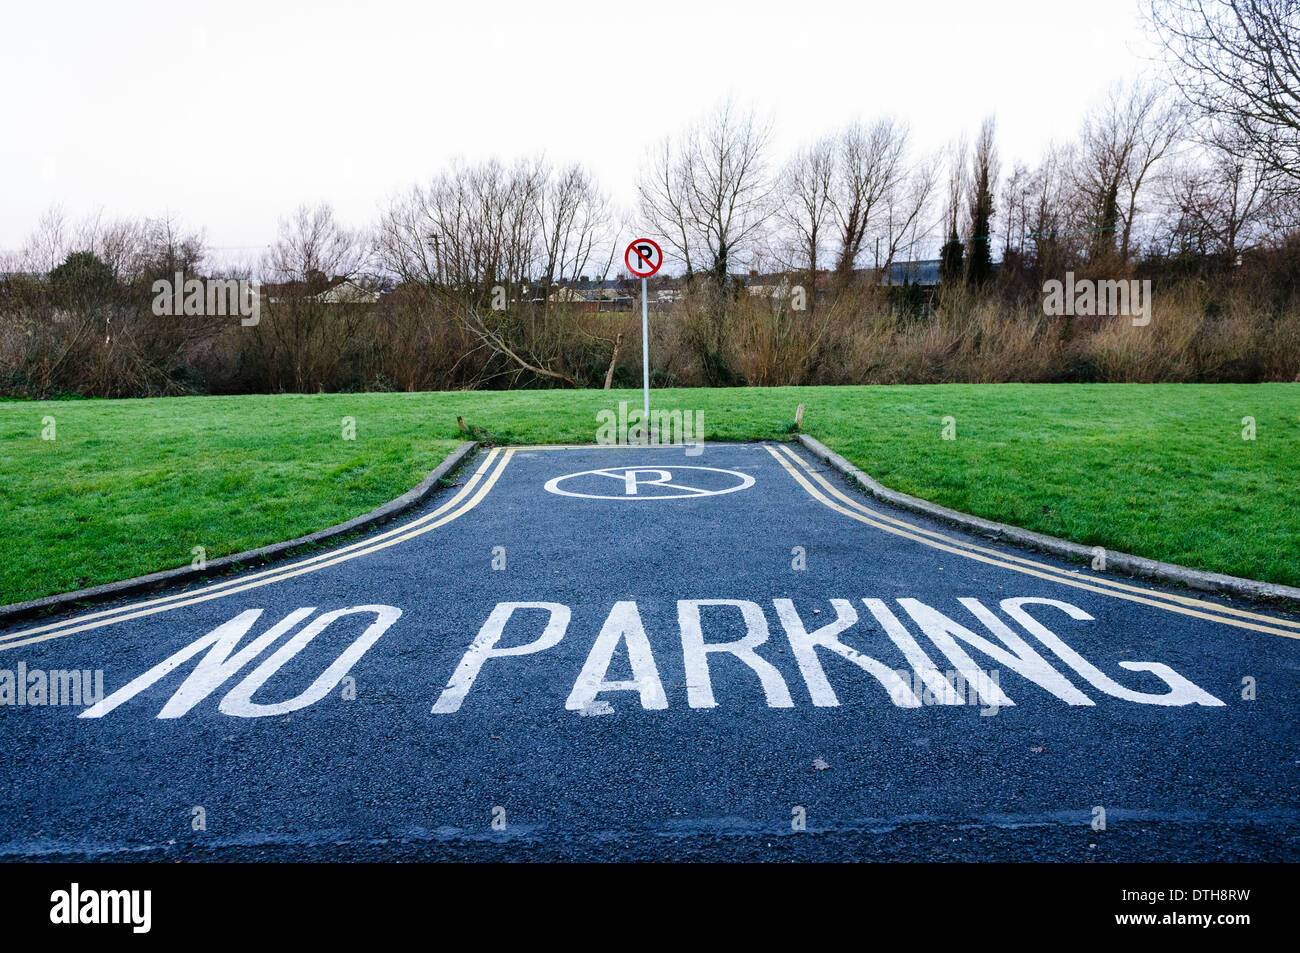 No parking sign and road marking - Stock Image